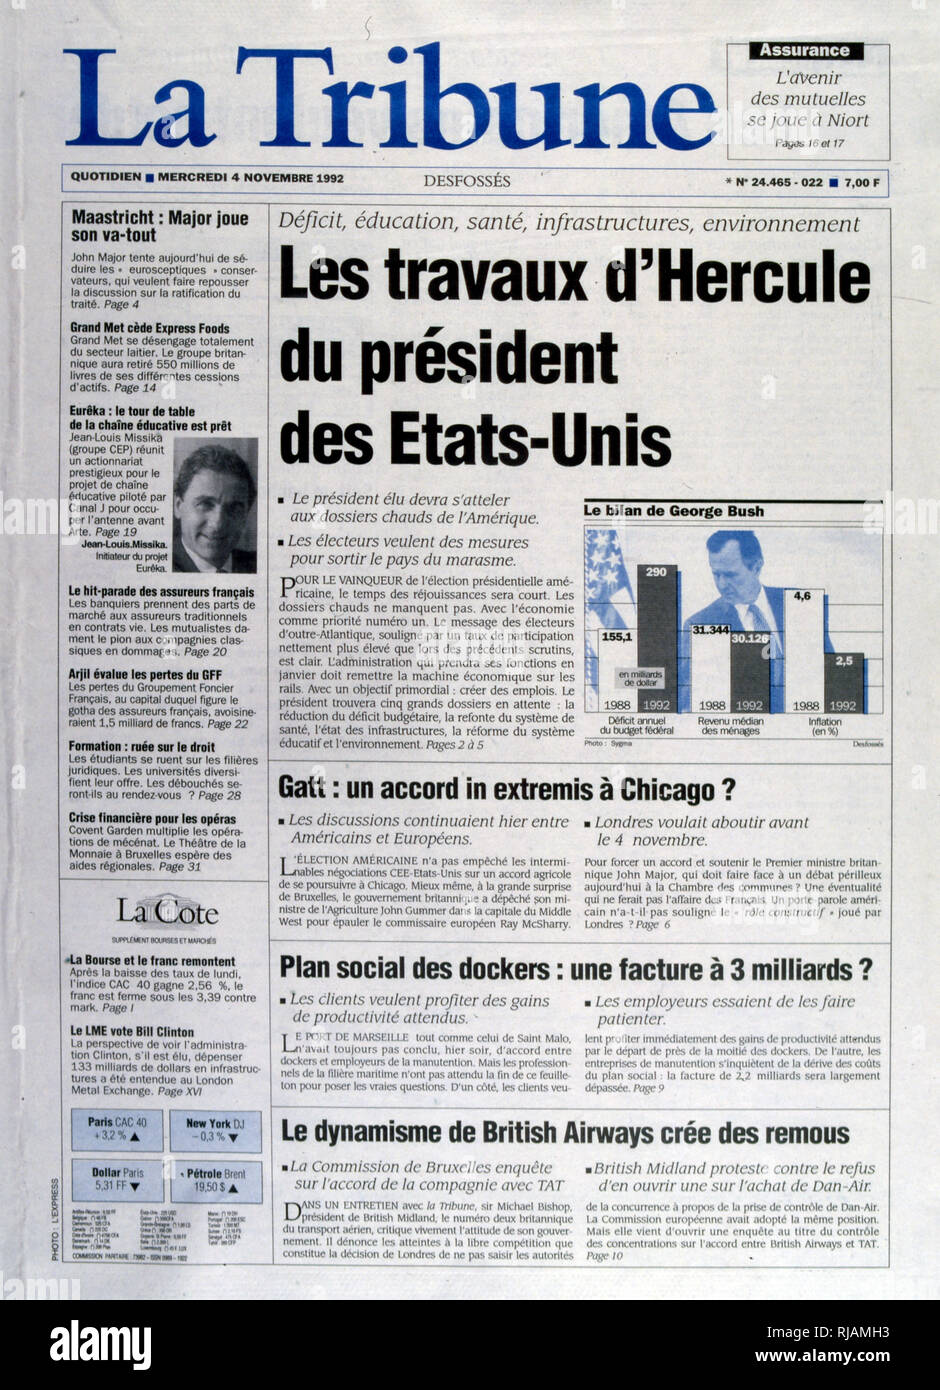 Titre dans le journal français 'La tribune' concernant les priorités économiques pour le président entrant après l'élection présidentielle américaine de novembre 1992. Le Président sortant, George Bush a perdu contre le gouverneur Bill Clinton. Photo Stock